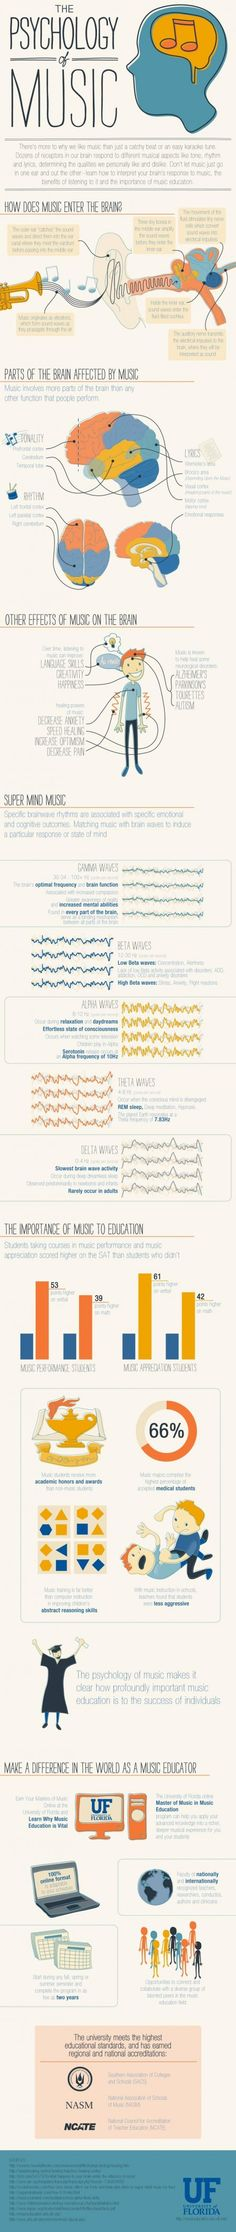 The Psychology of Music--Cool information about how music affects our minds.